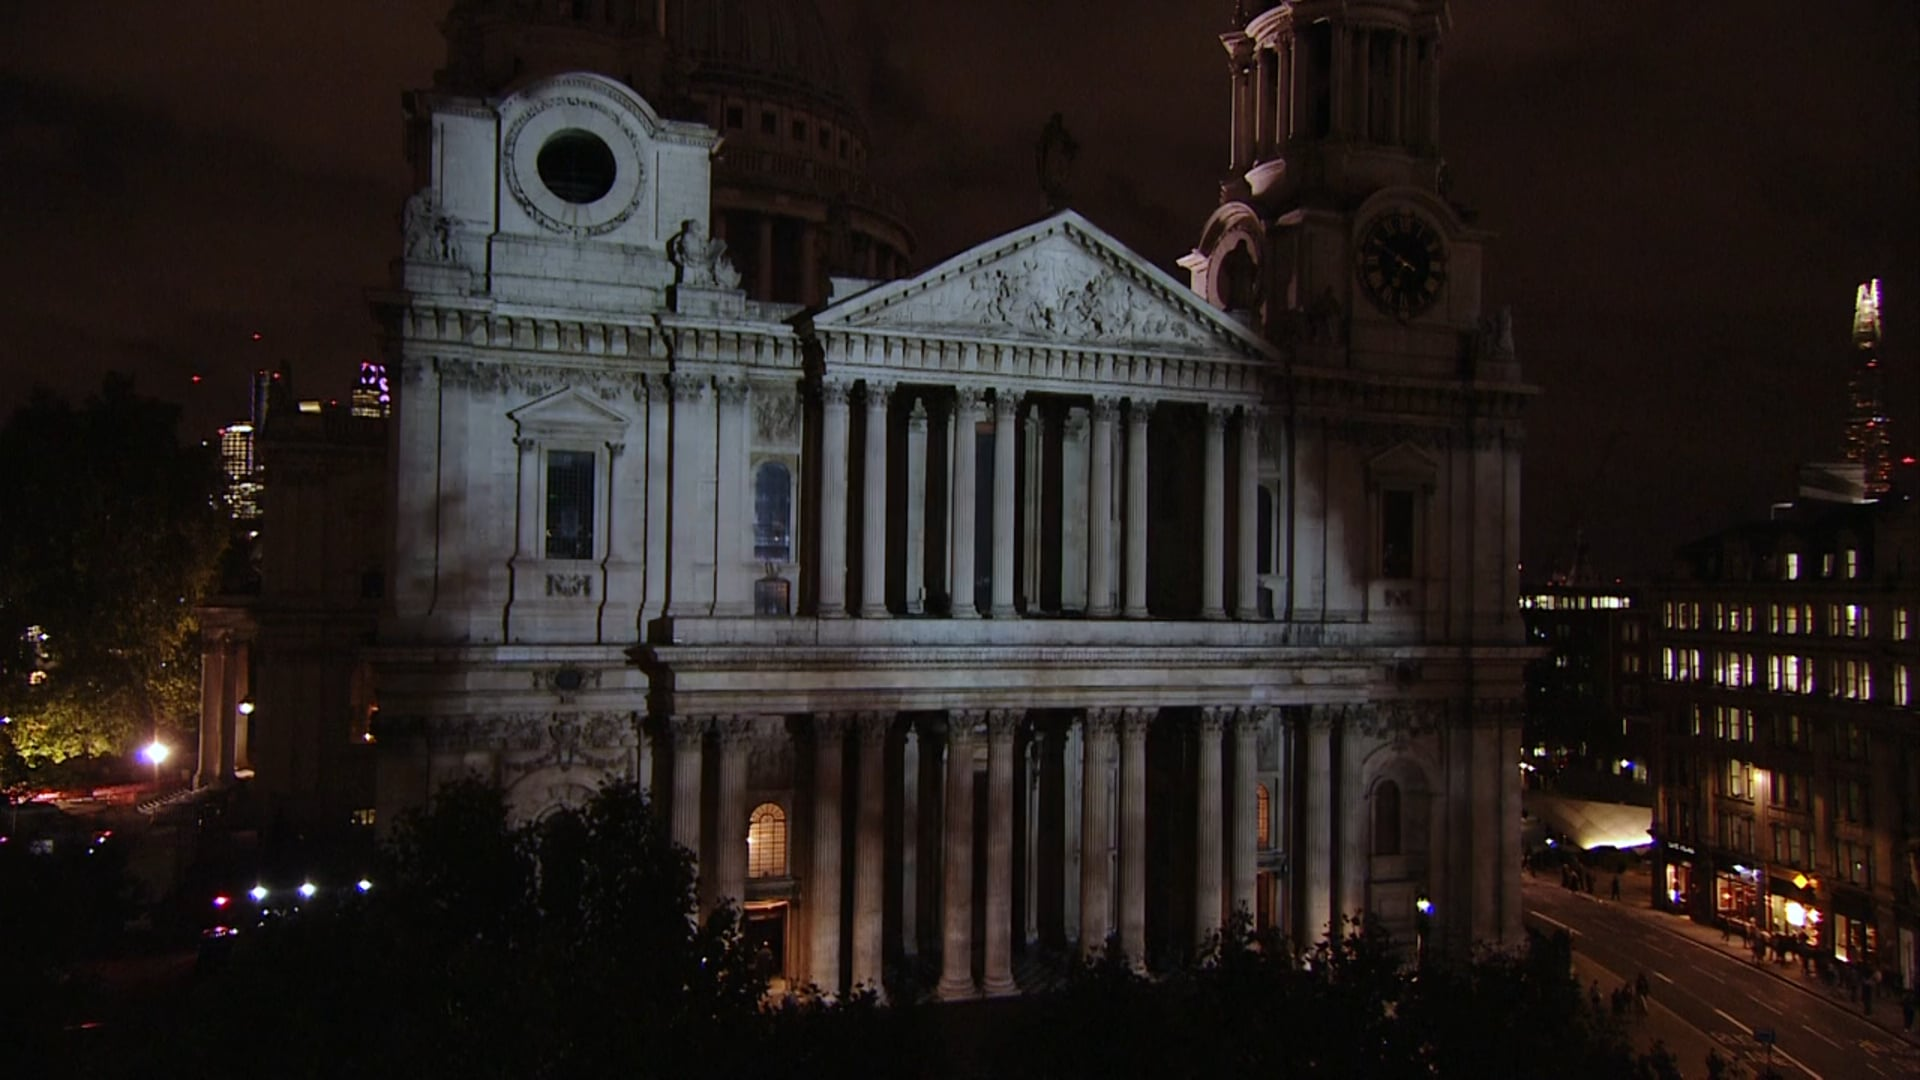 Where Light Falls - St Paul's Cathedral